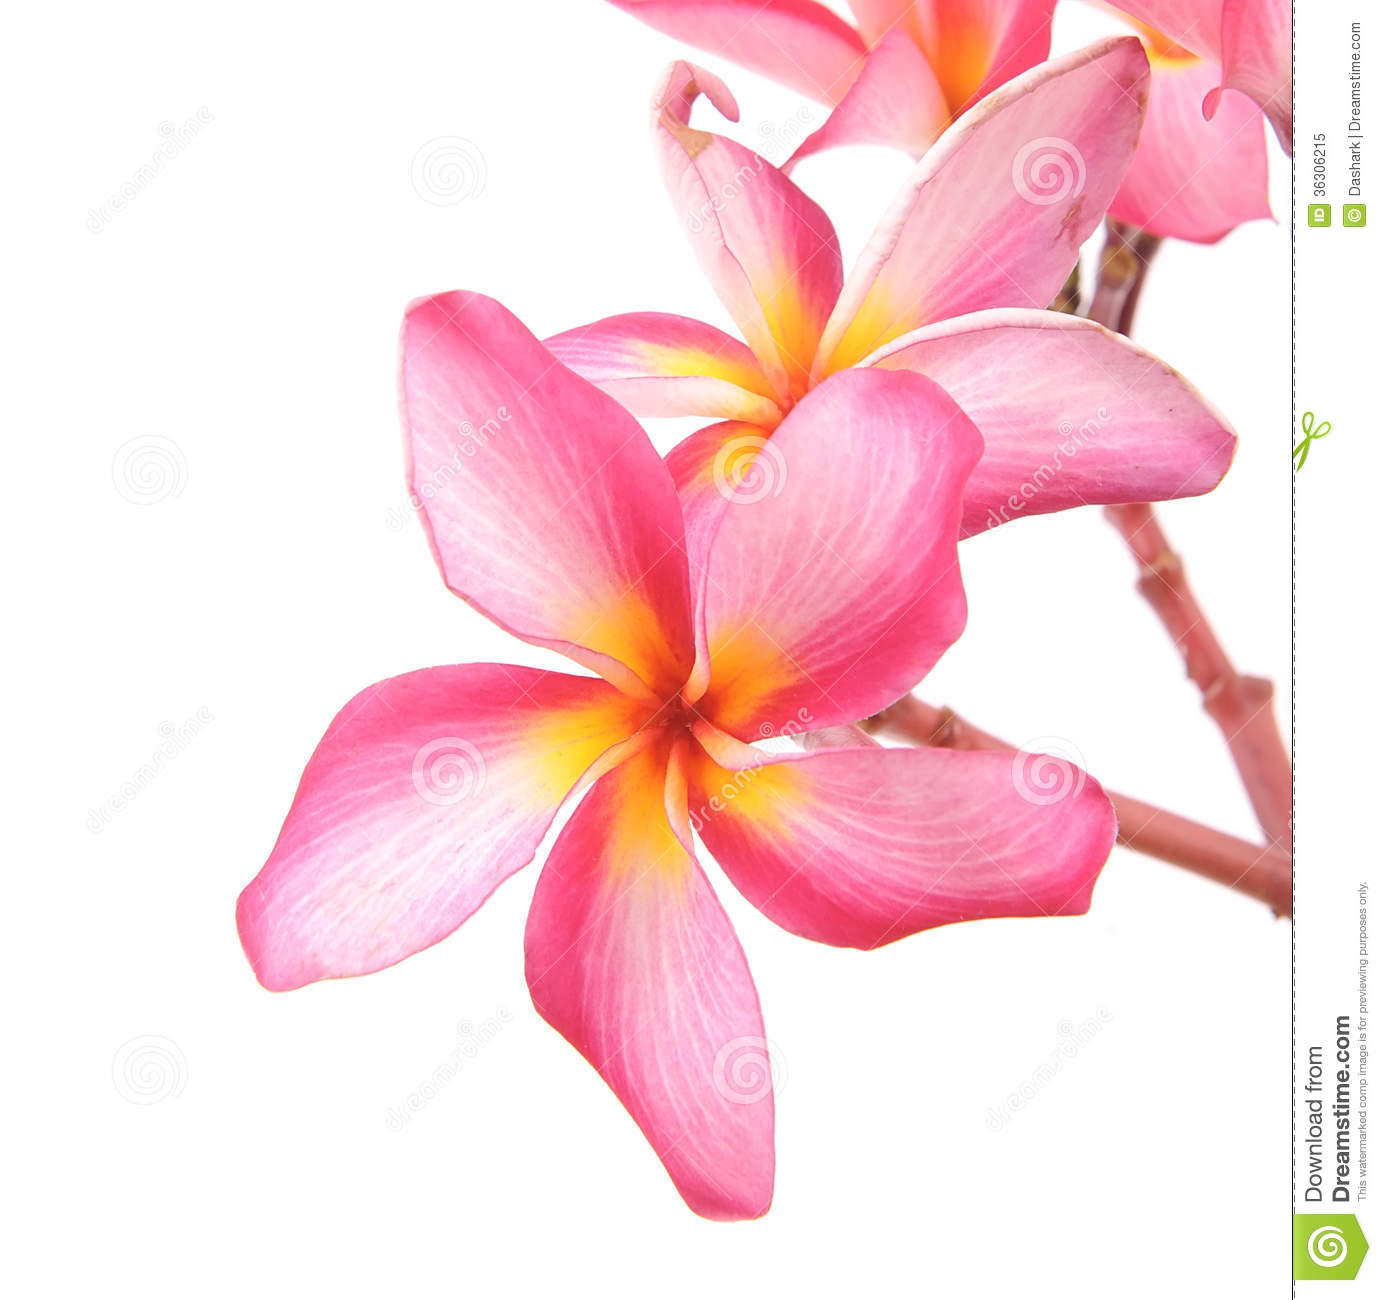 Plumeria flowers stock image. Image of element, calmness ...